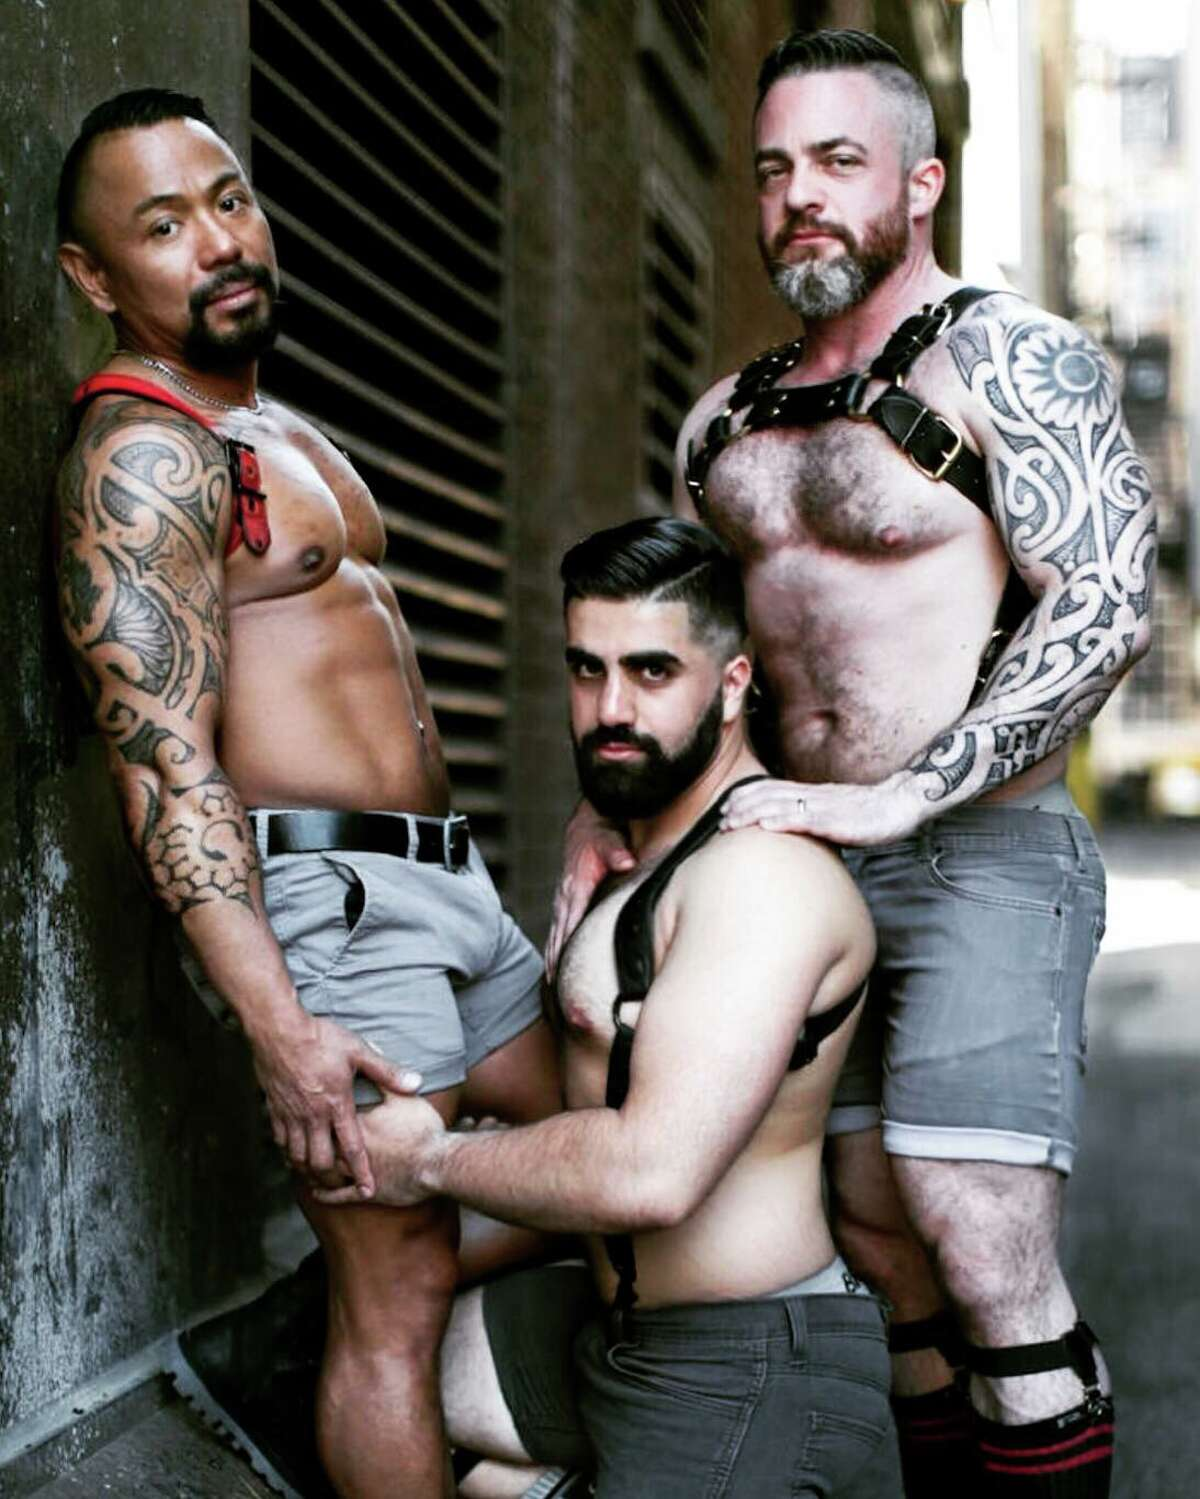 Andy Wibbels (right), a Folsom Street Fair enthusiast, will be going to his 10th fair this weekend. Here he poses with Ron Zamora (left) and Sunny Gill (center) in a photoshoot for one of the weekend's events.